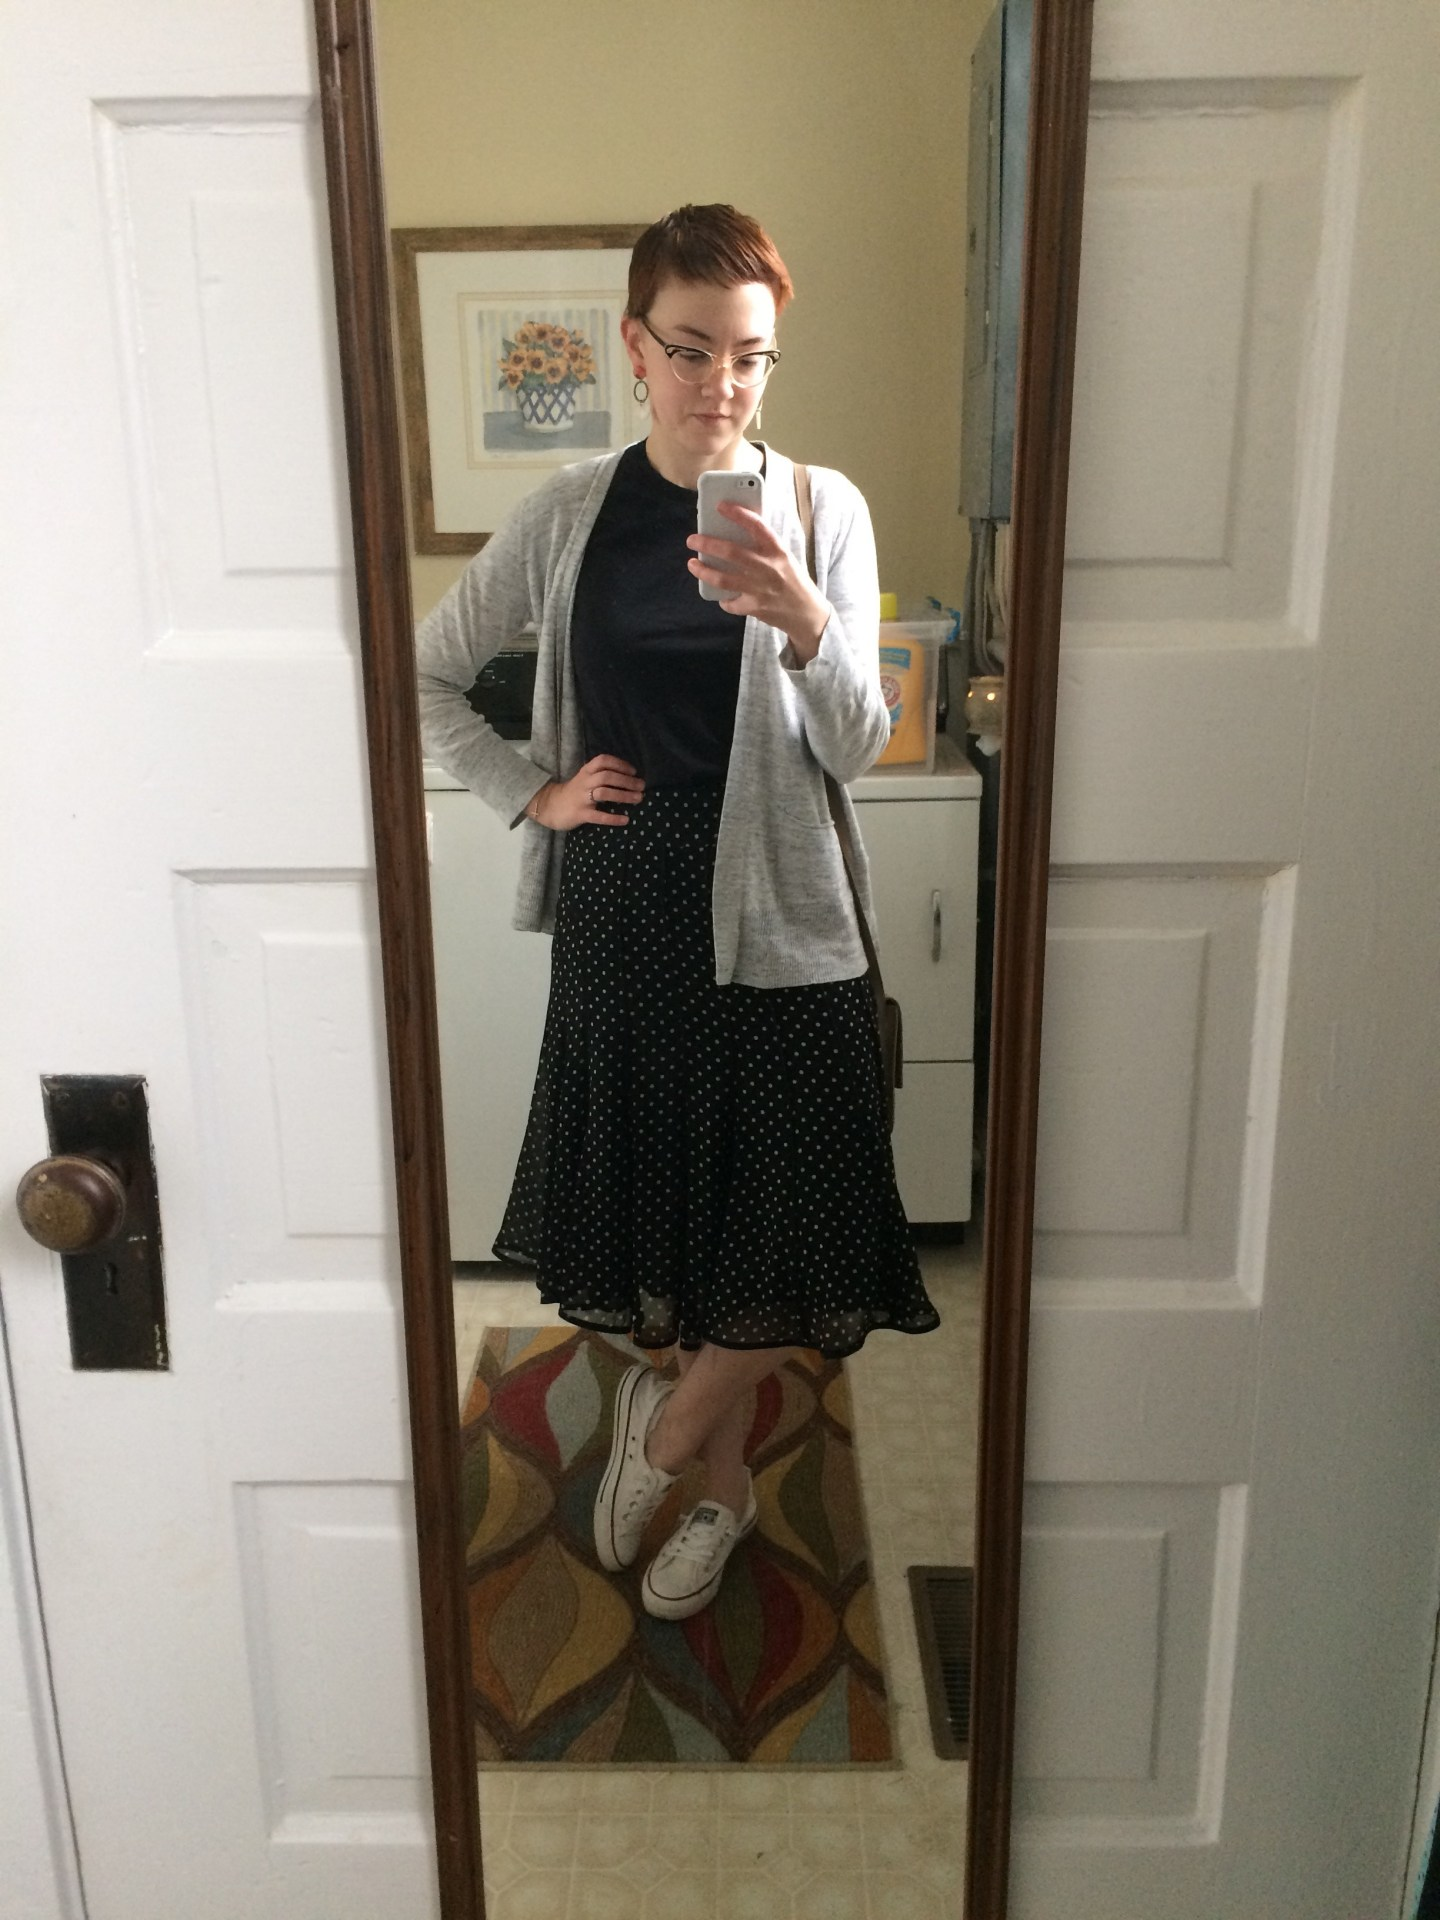 Outfit Three: Tee -  Everlane Crew Neck ; Skirt, Cardigan, and Shoes - thrifted; Earrings - c/o  ABLE